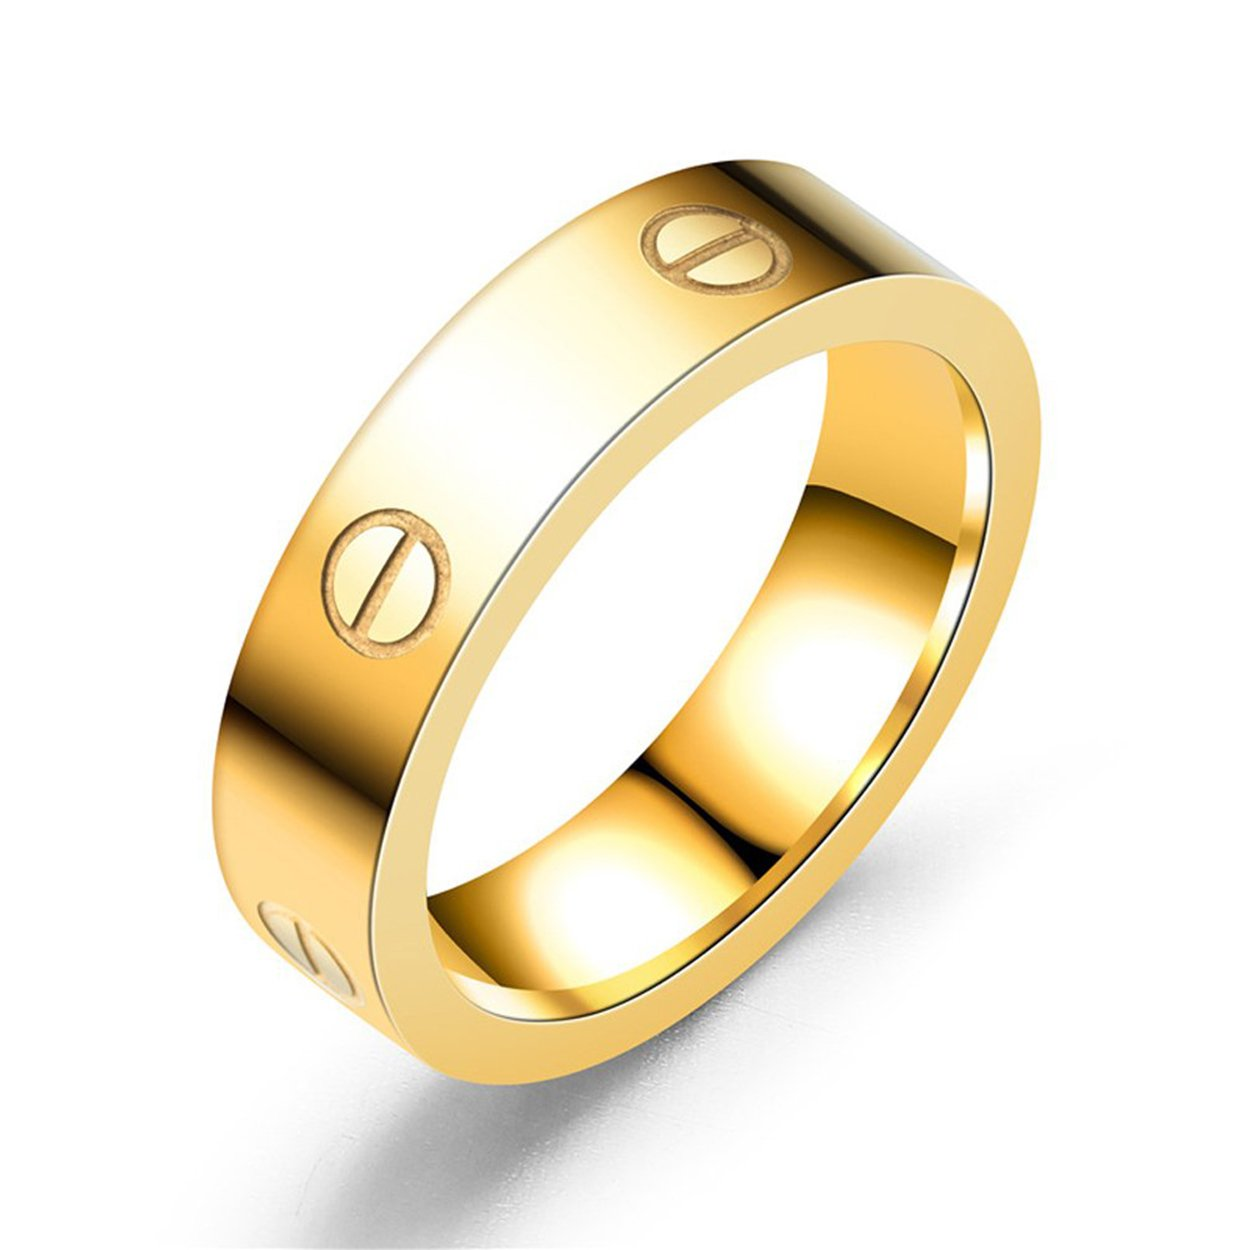 Mintrayor Lifetime Love Rings for Women Men Couples Promise Wedding Titanium Stainless Steel Band Size 8 Gold